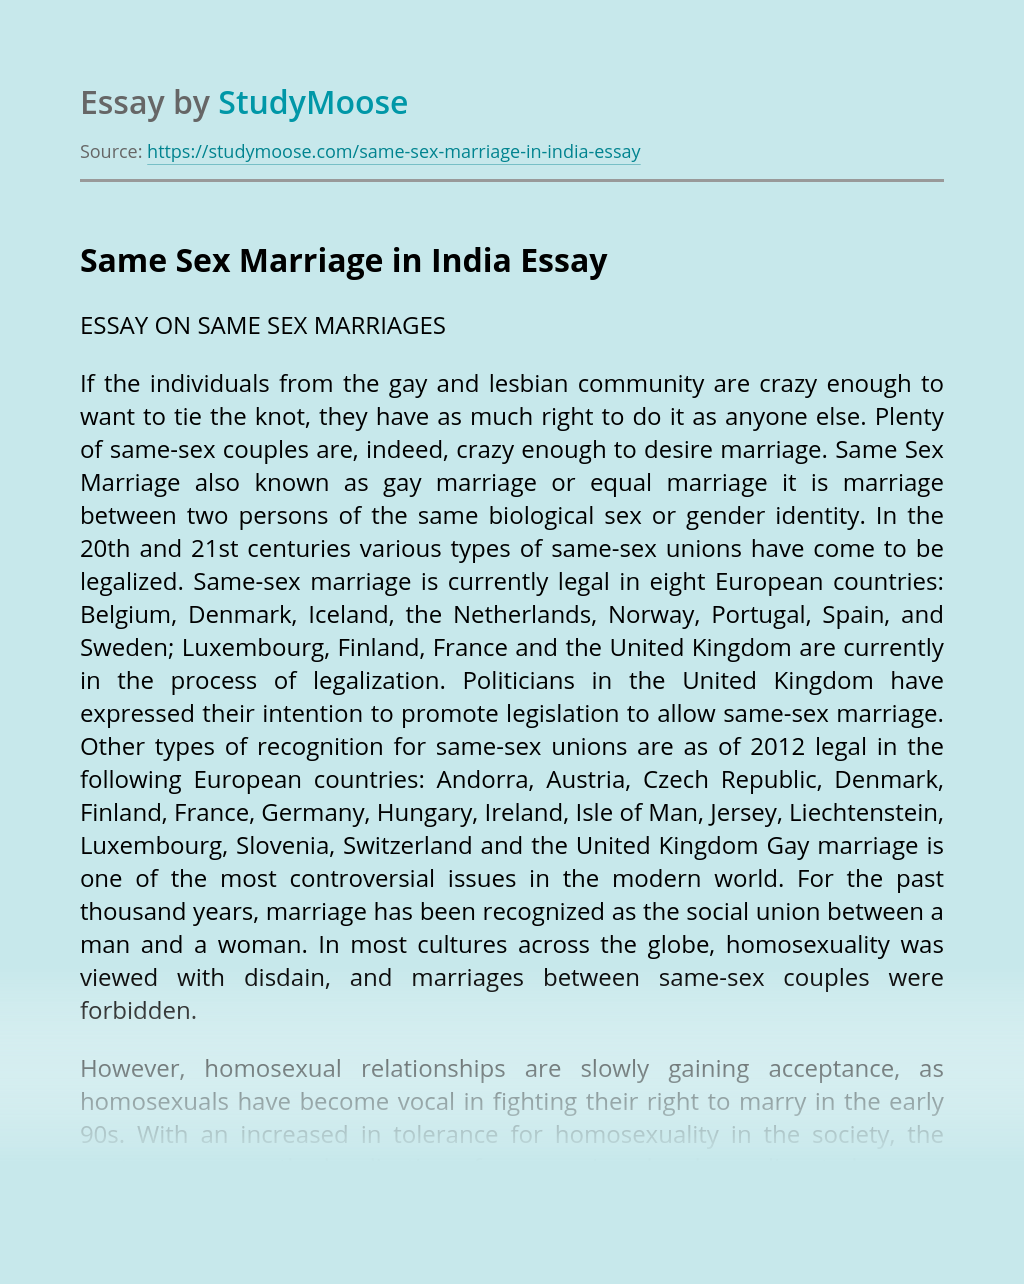 Same Sex Marriage in India